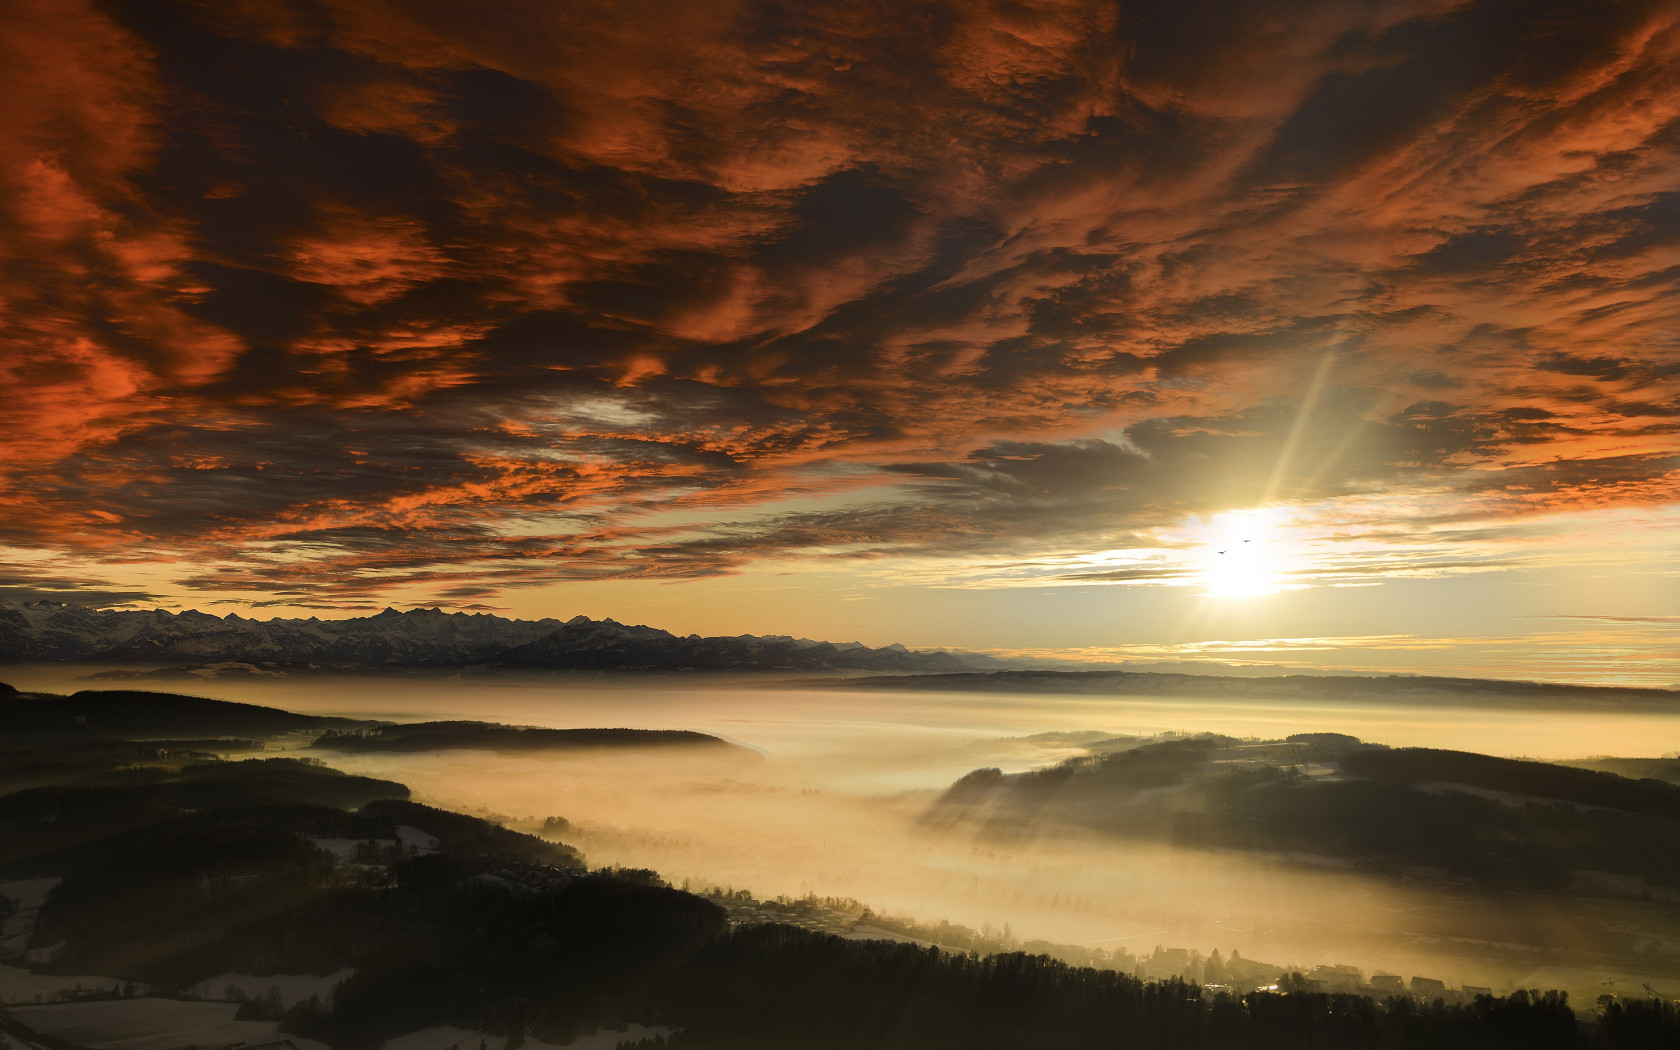 Sunset from Uetliberg, Switzerland wallpaper 1680x1050